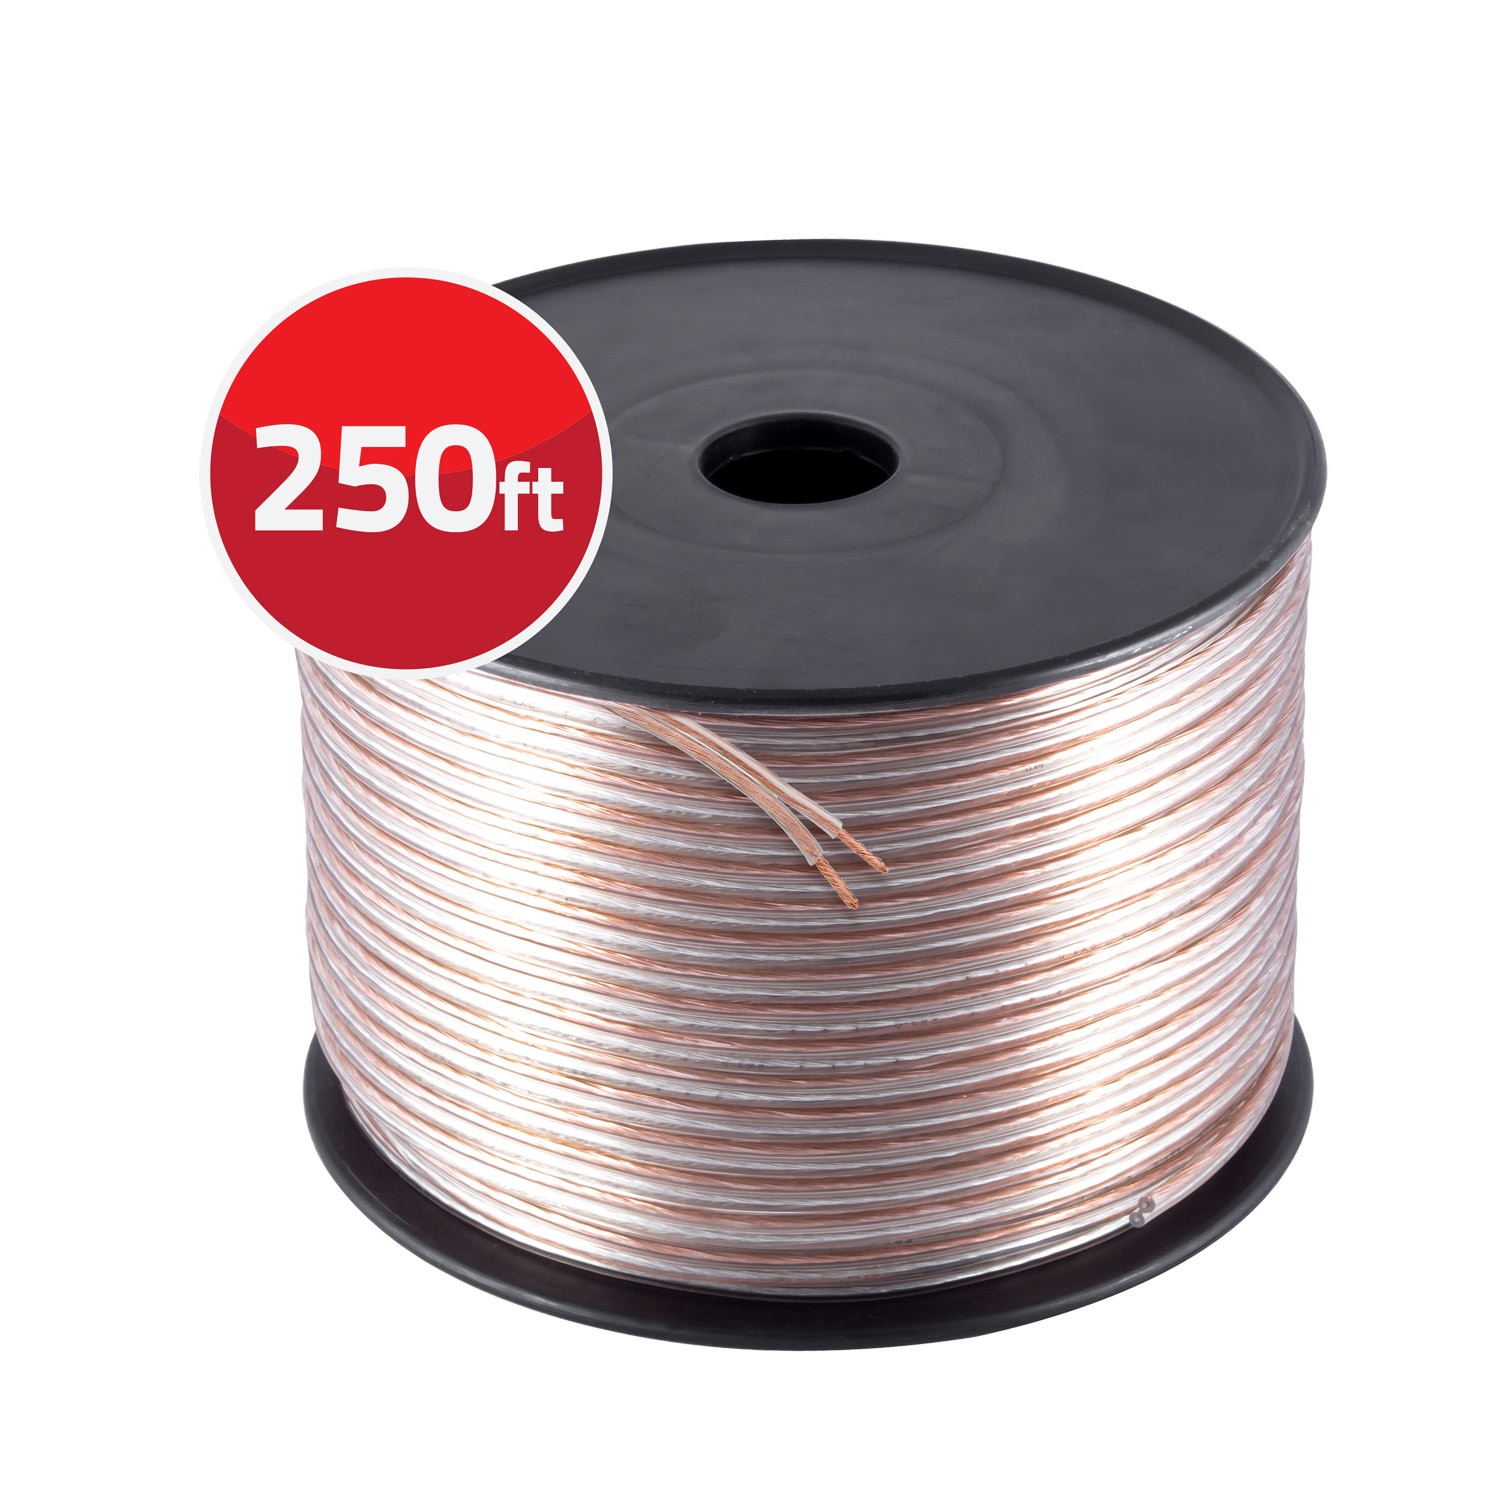 250 feet of Speaker Wire for Fluance Home Theater Soeakers